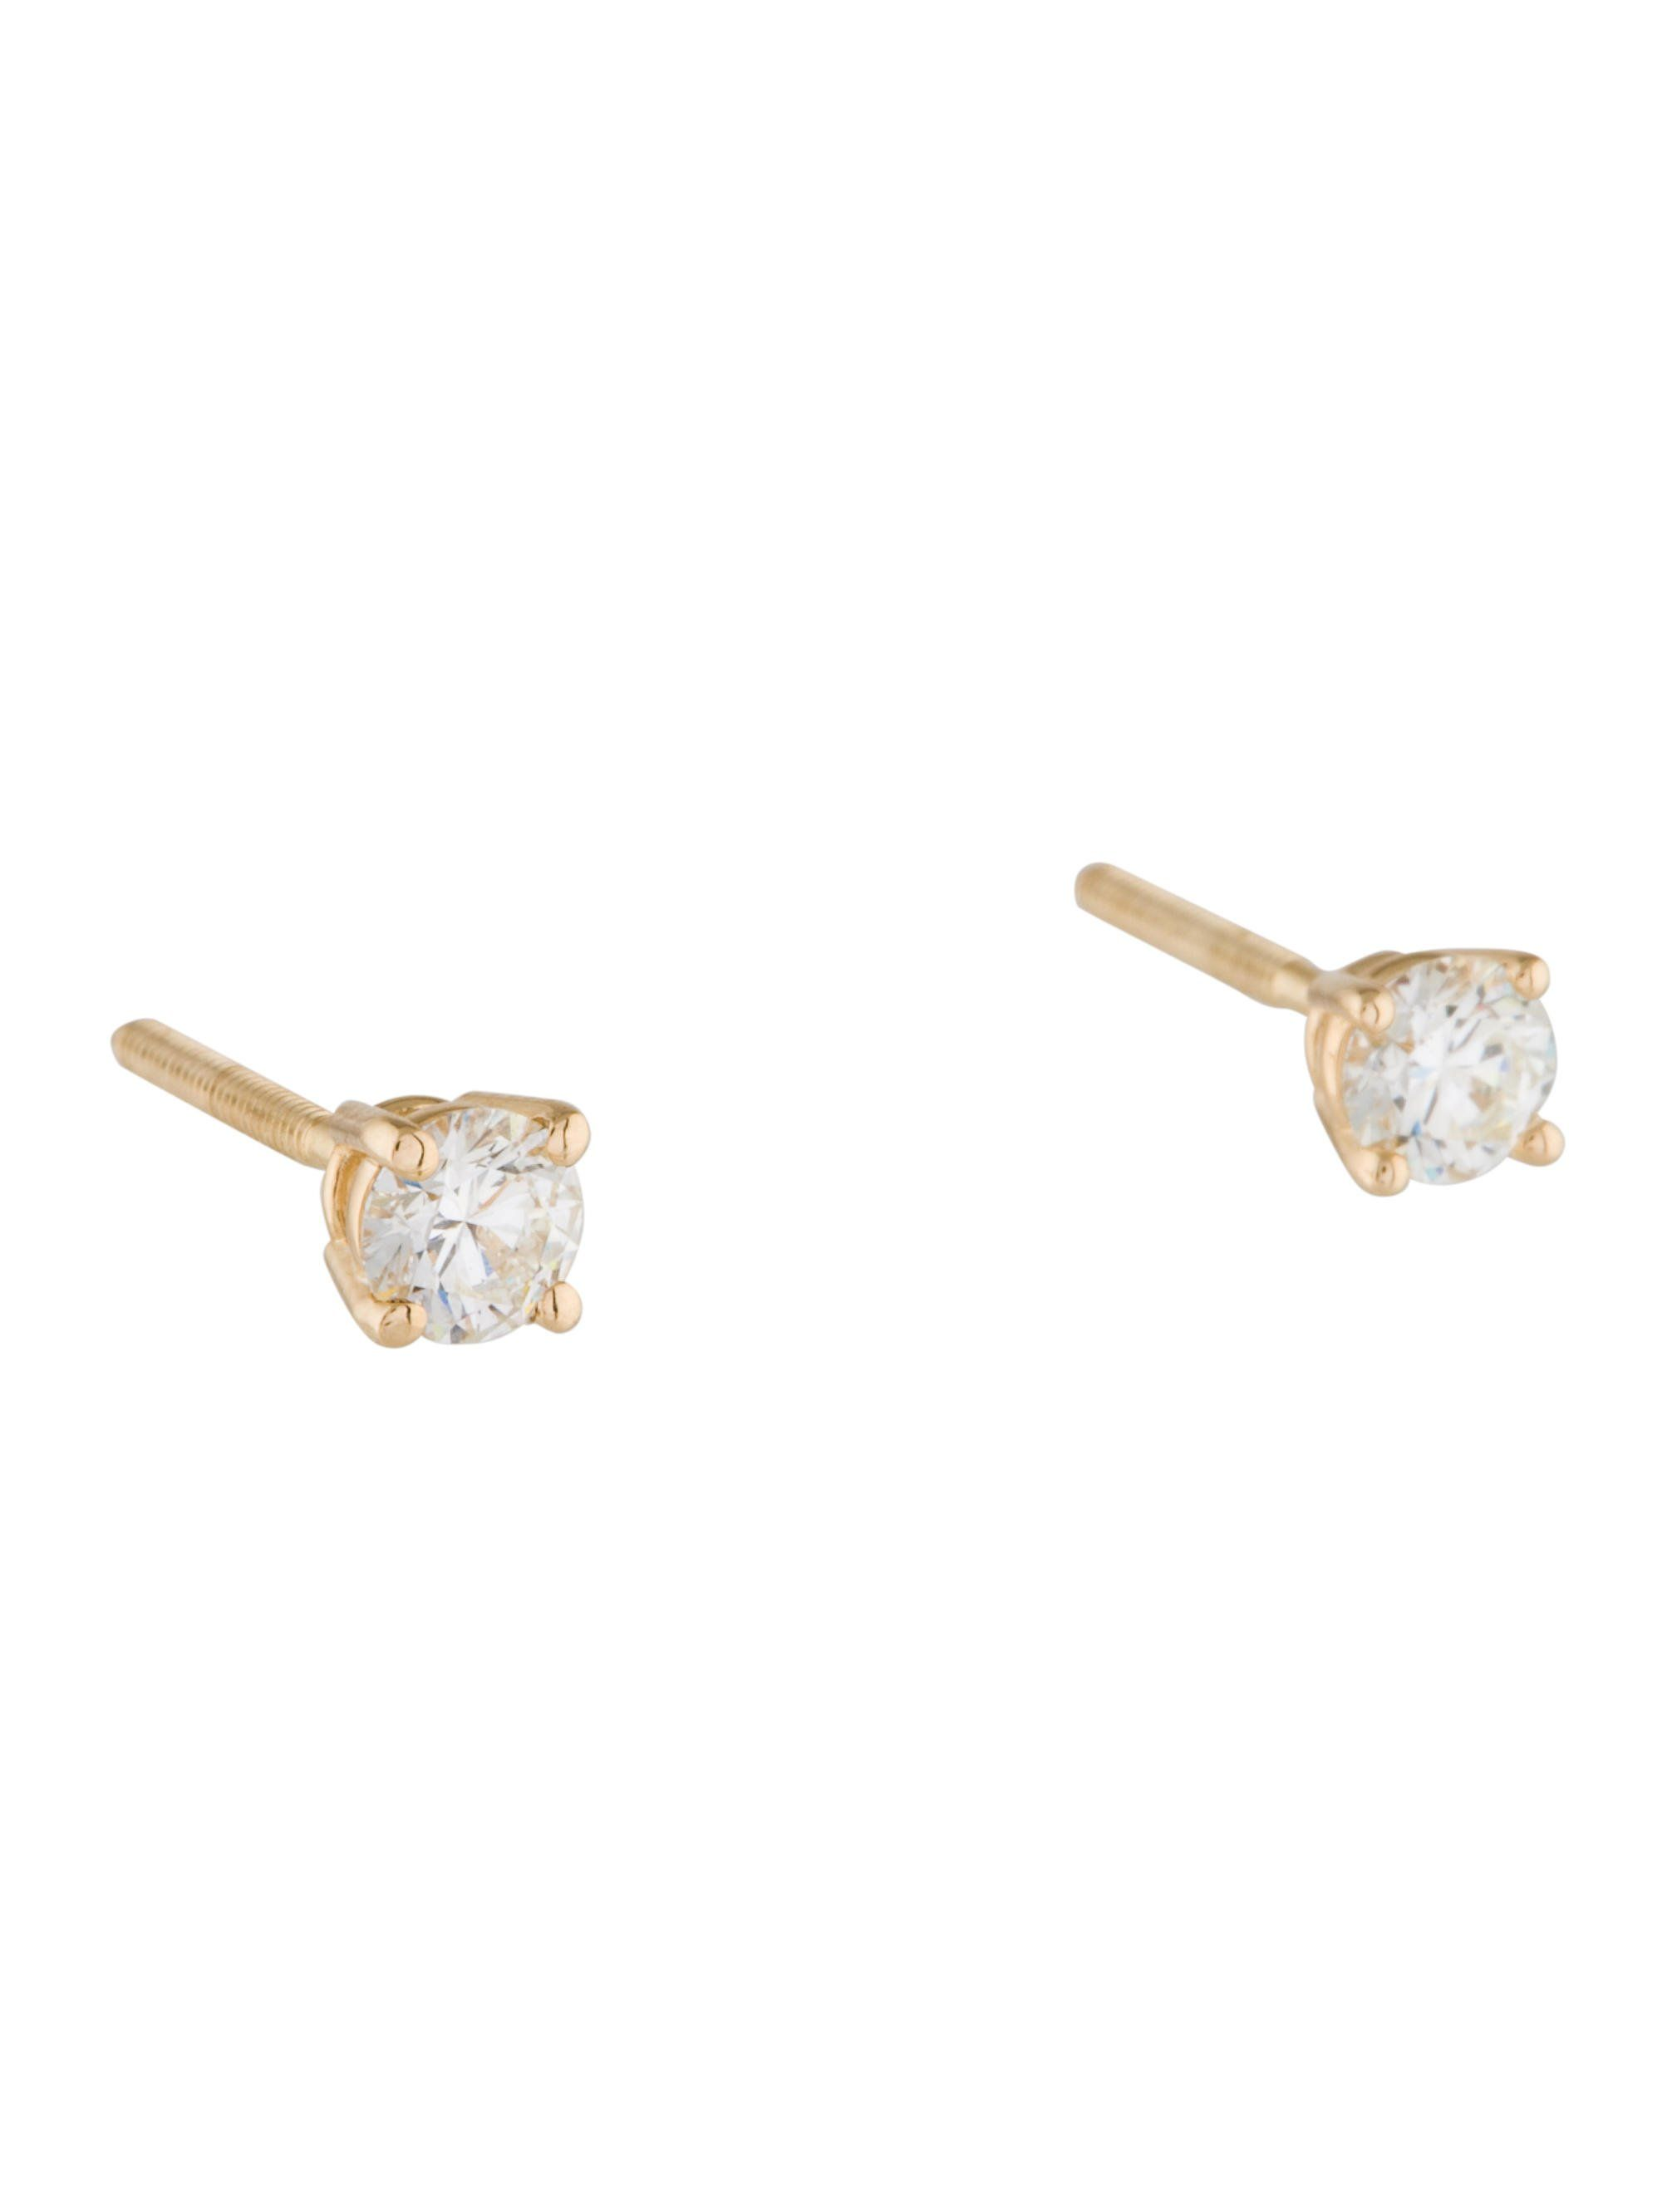 6a6be5b28 14K yellow gold stud earrings featuring 0.51 carats of round brilliant  diamonds and threaded screw back closures. Includes valuation report.